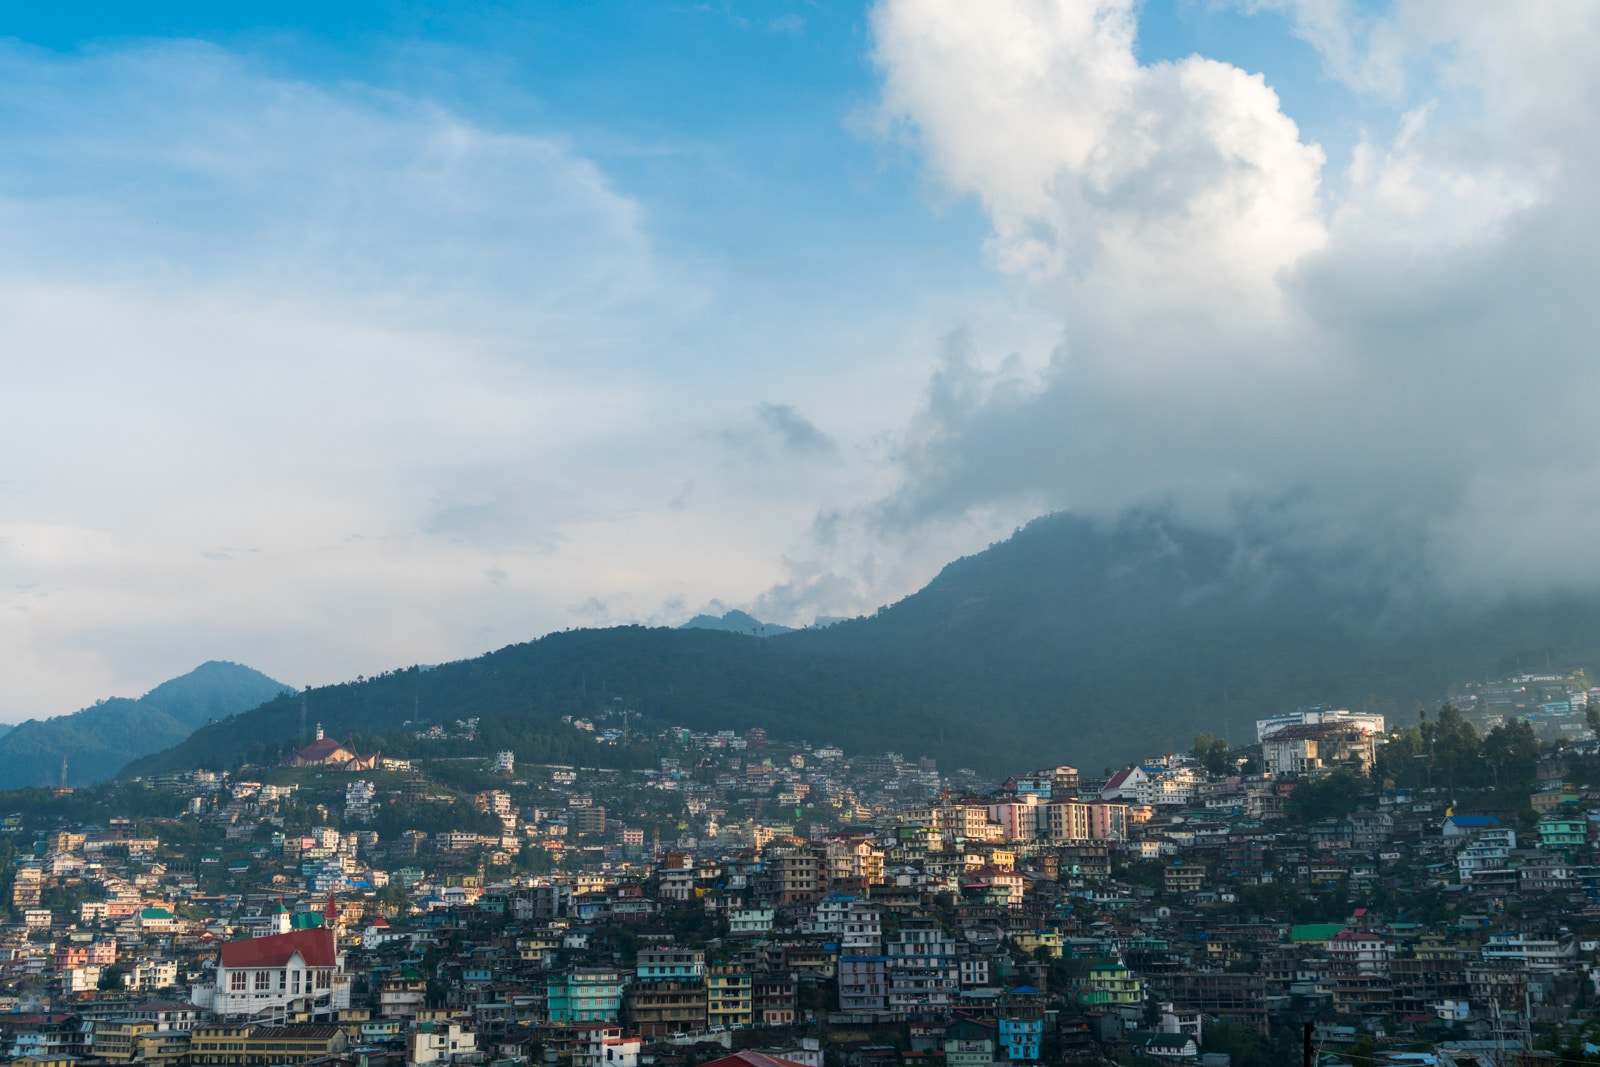 A guide to Dzukou Valley, Nagaland, India - A view of Kohima from the balcony of Morung Lodge homestay in Nagaland - Lost With Purpose